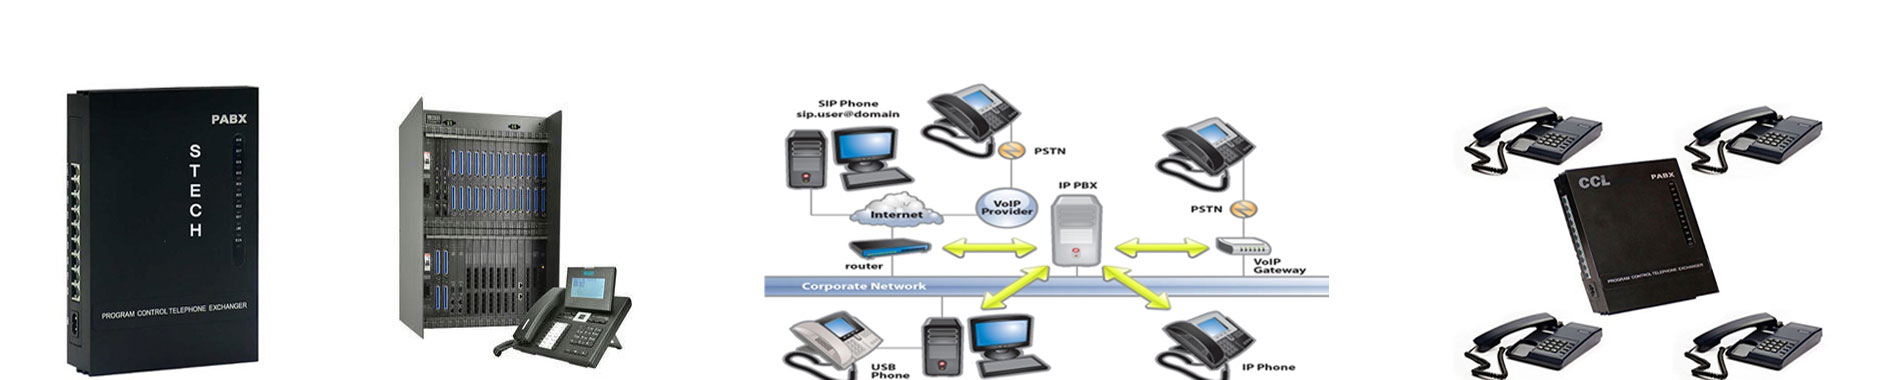 Epabx intercom system training institute in Delhi